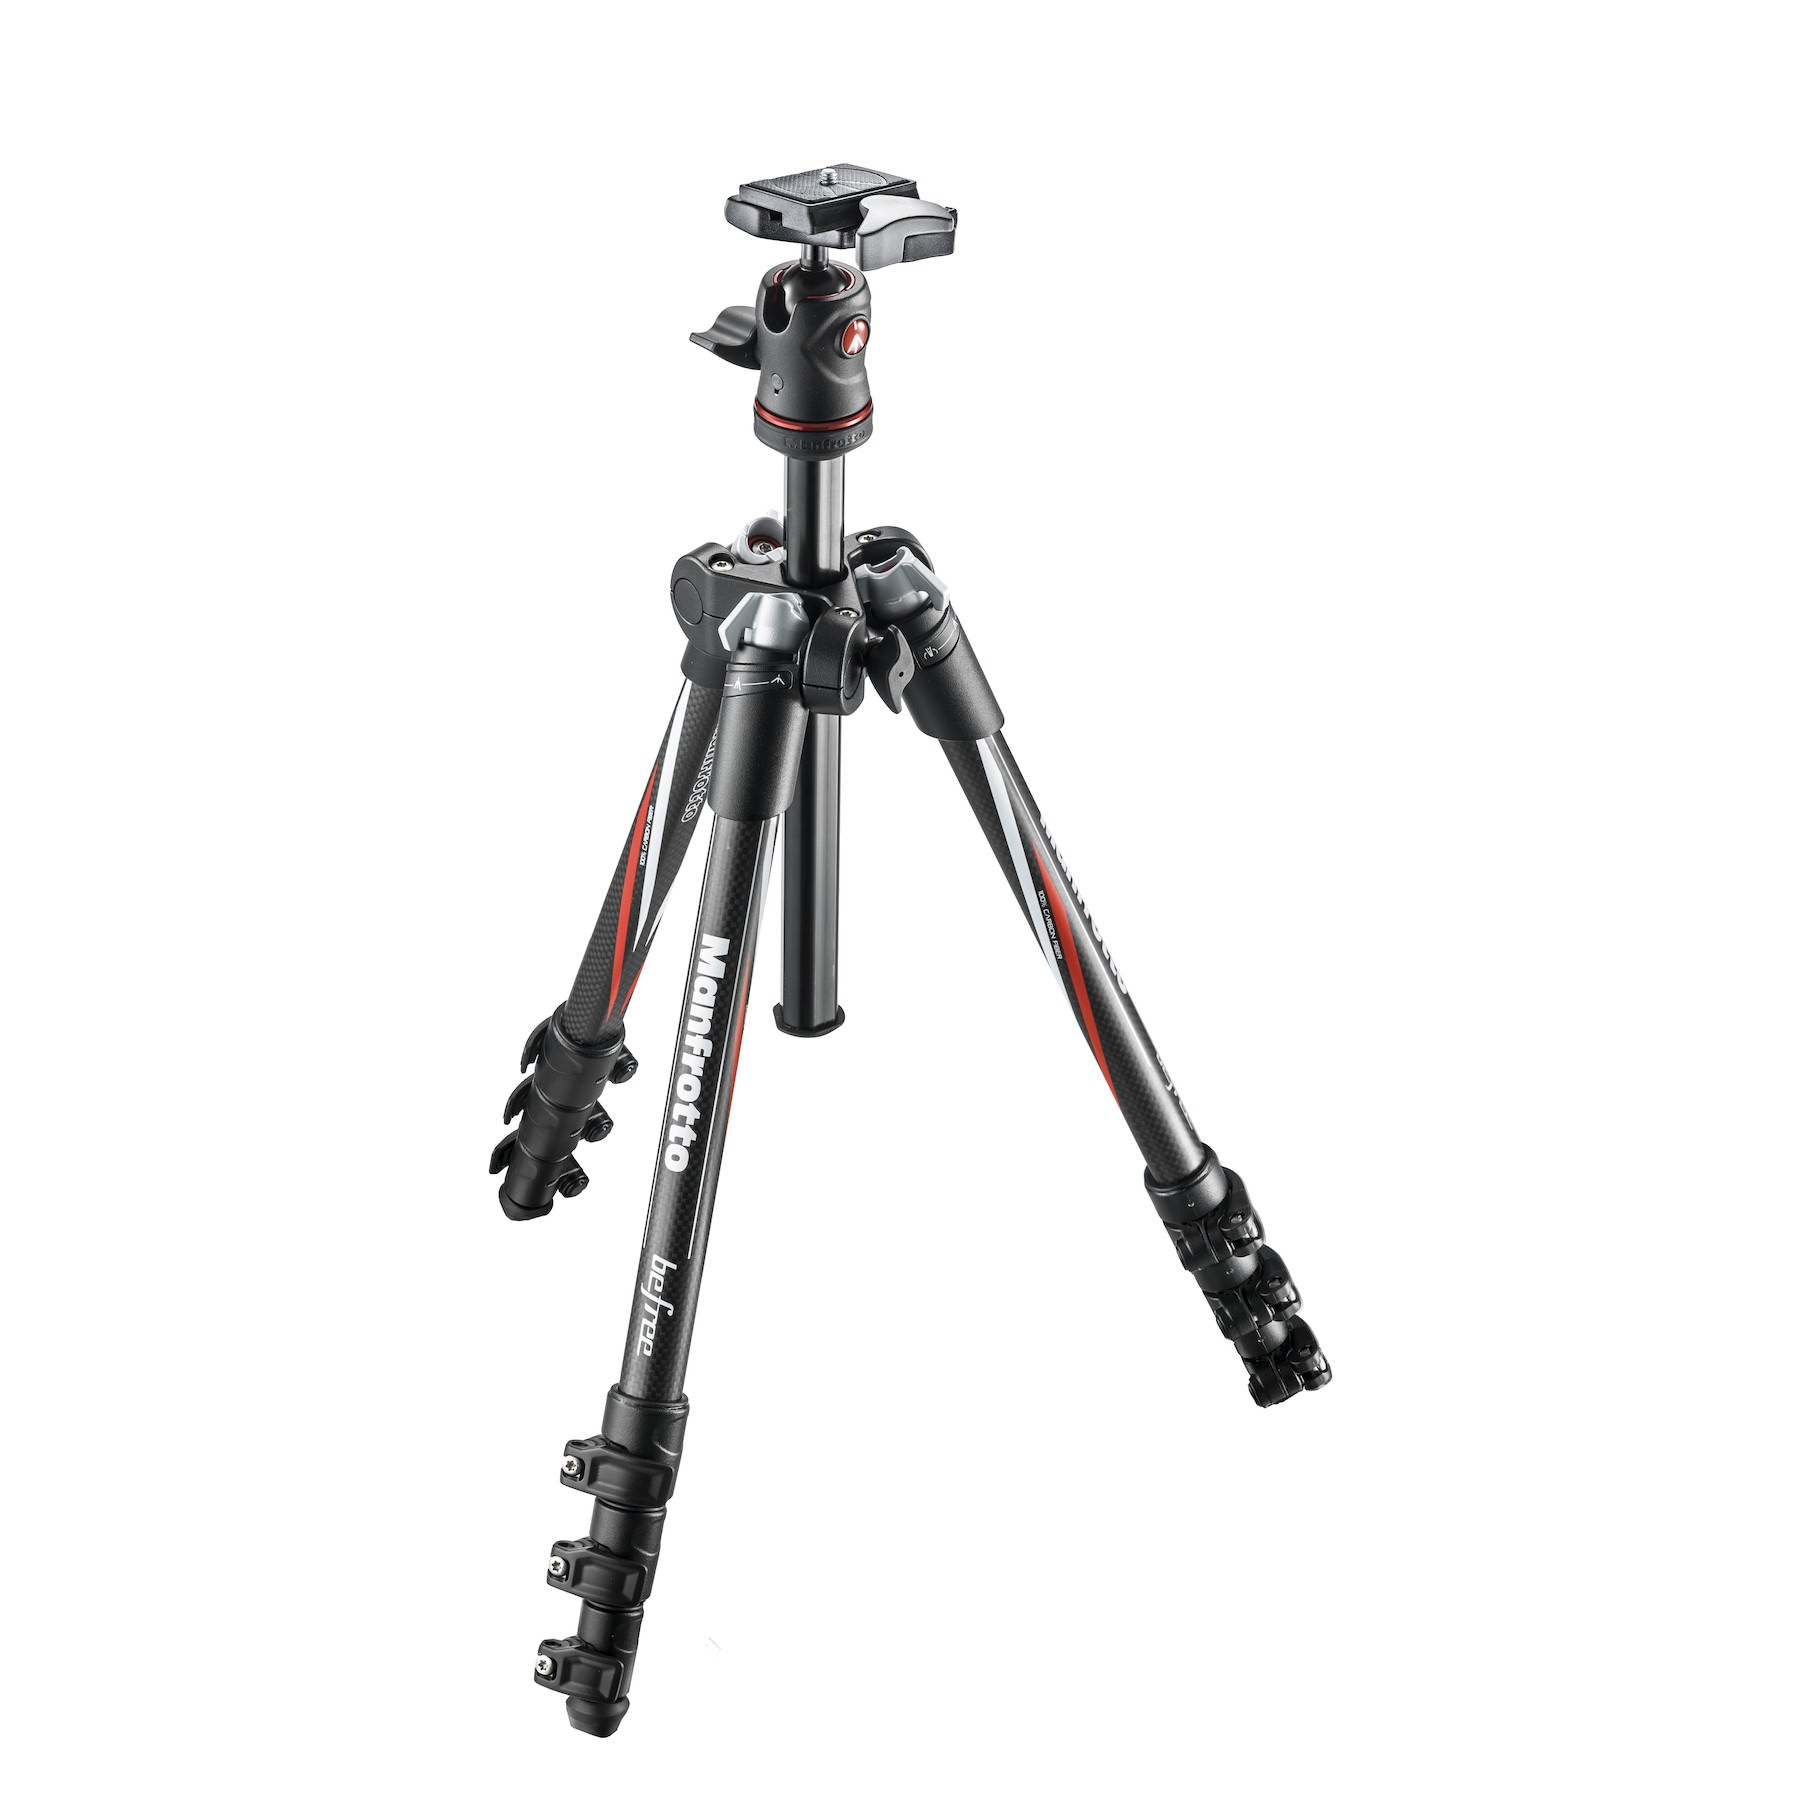 Manfrotto MKBFRC4-BH Carbon-Fibre Travel Tripod Kit with Ball Head